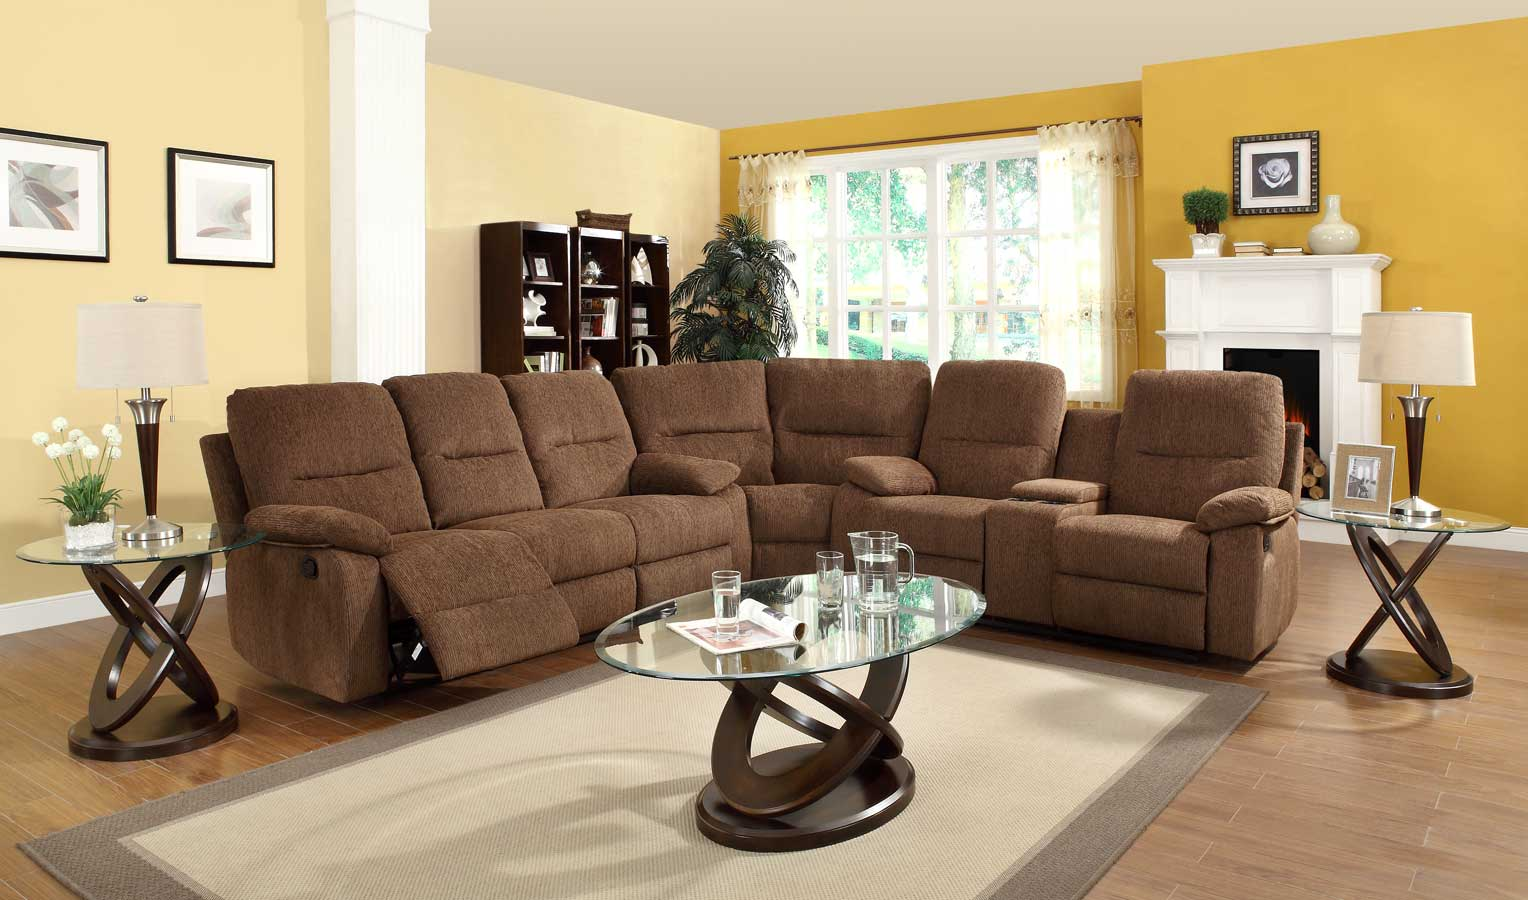 Homelegance Marianna Modular Reclining Sectional Sofa Set Dark